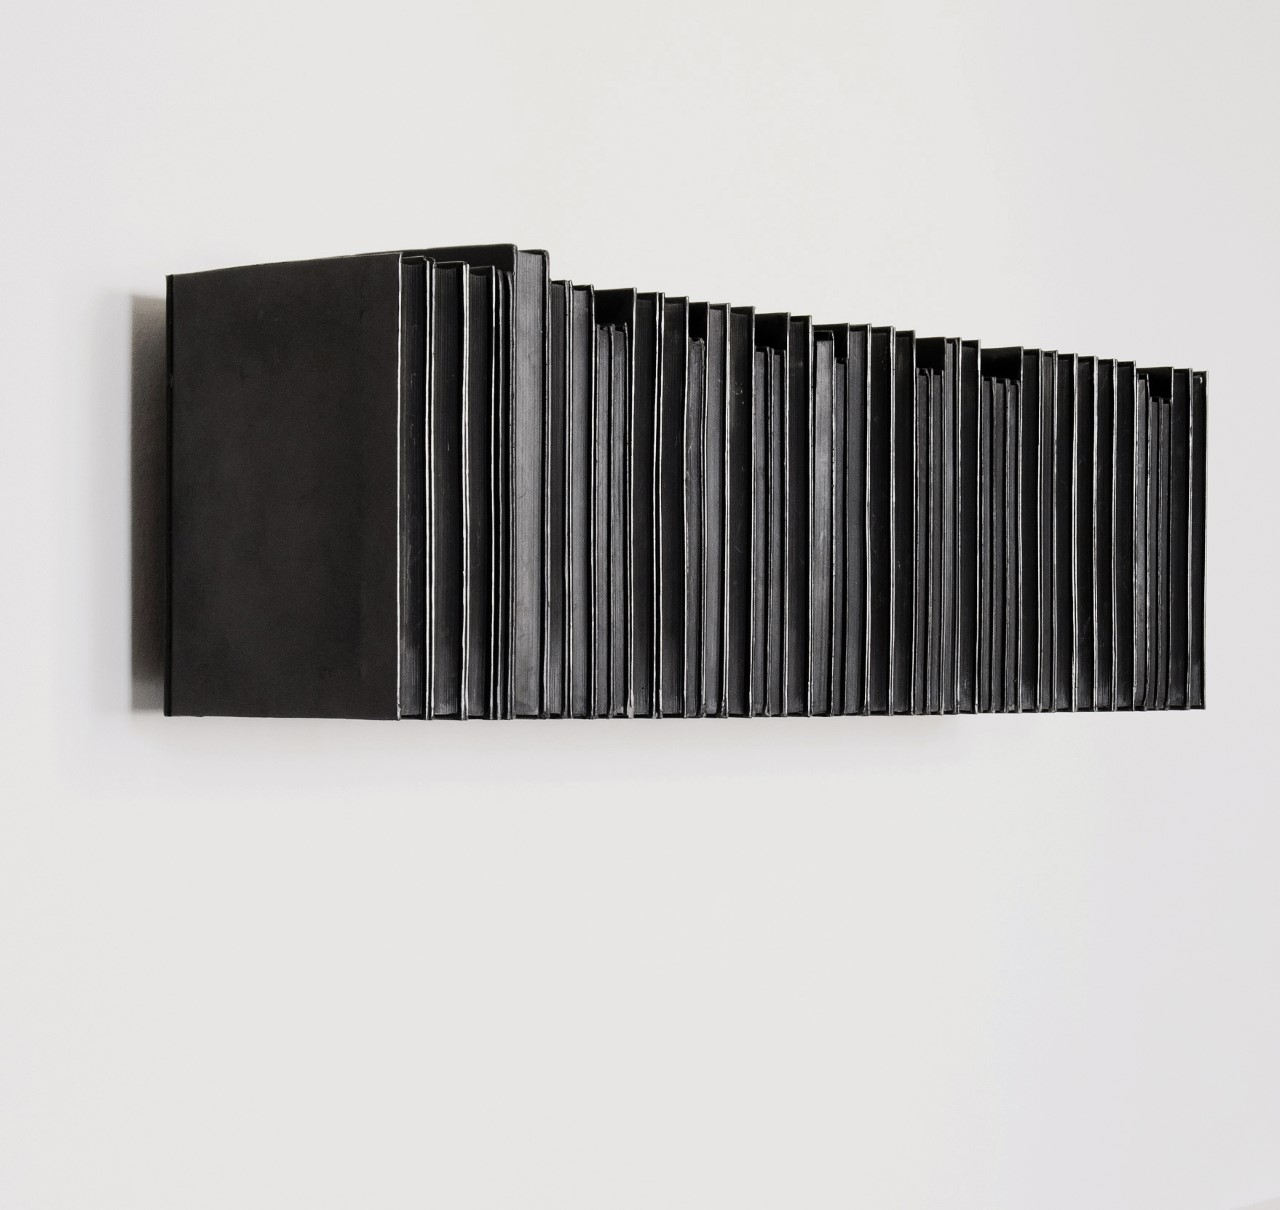 Rachel Whiteread,   Untitled (Black Books) , 1997, Black pigmented plastic and steel, 30 x 101 x 23 cm, edition of 10